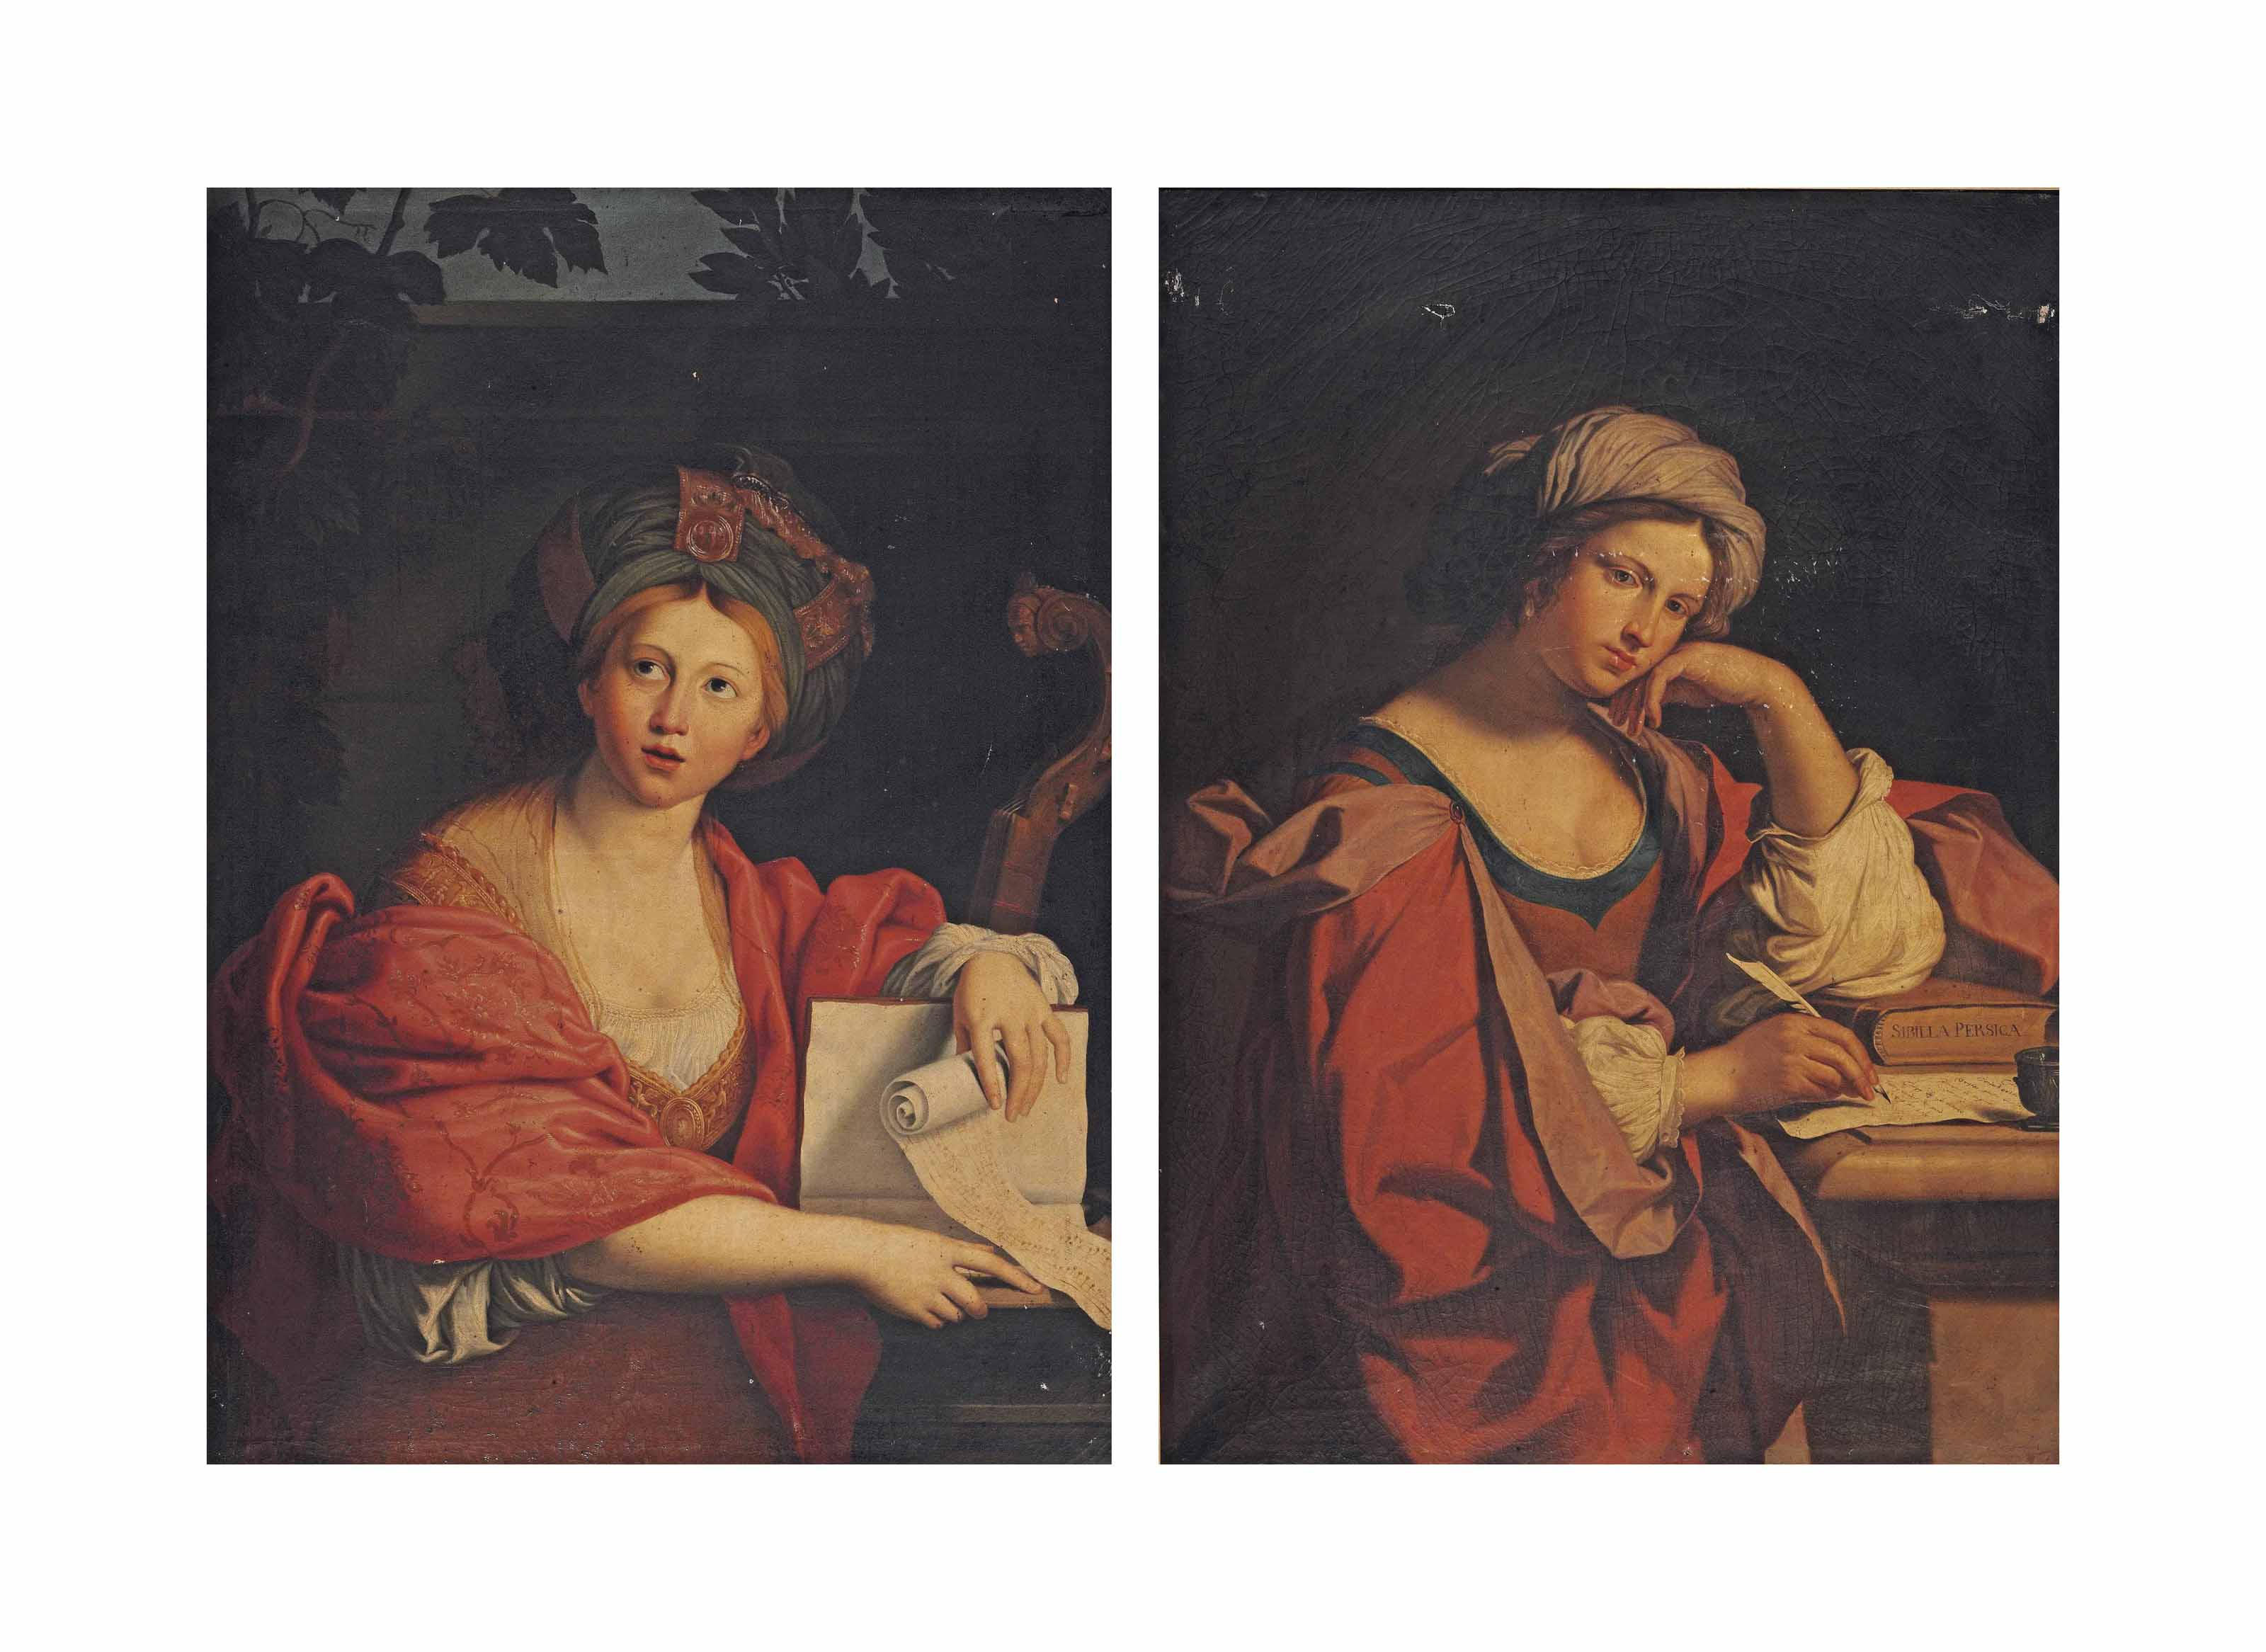 The Cumaean Sibyl; and The Persian Sibyl